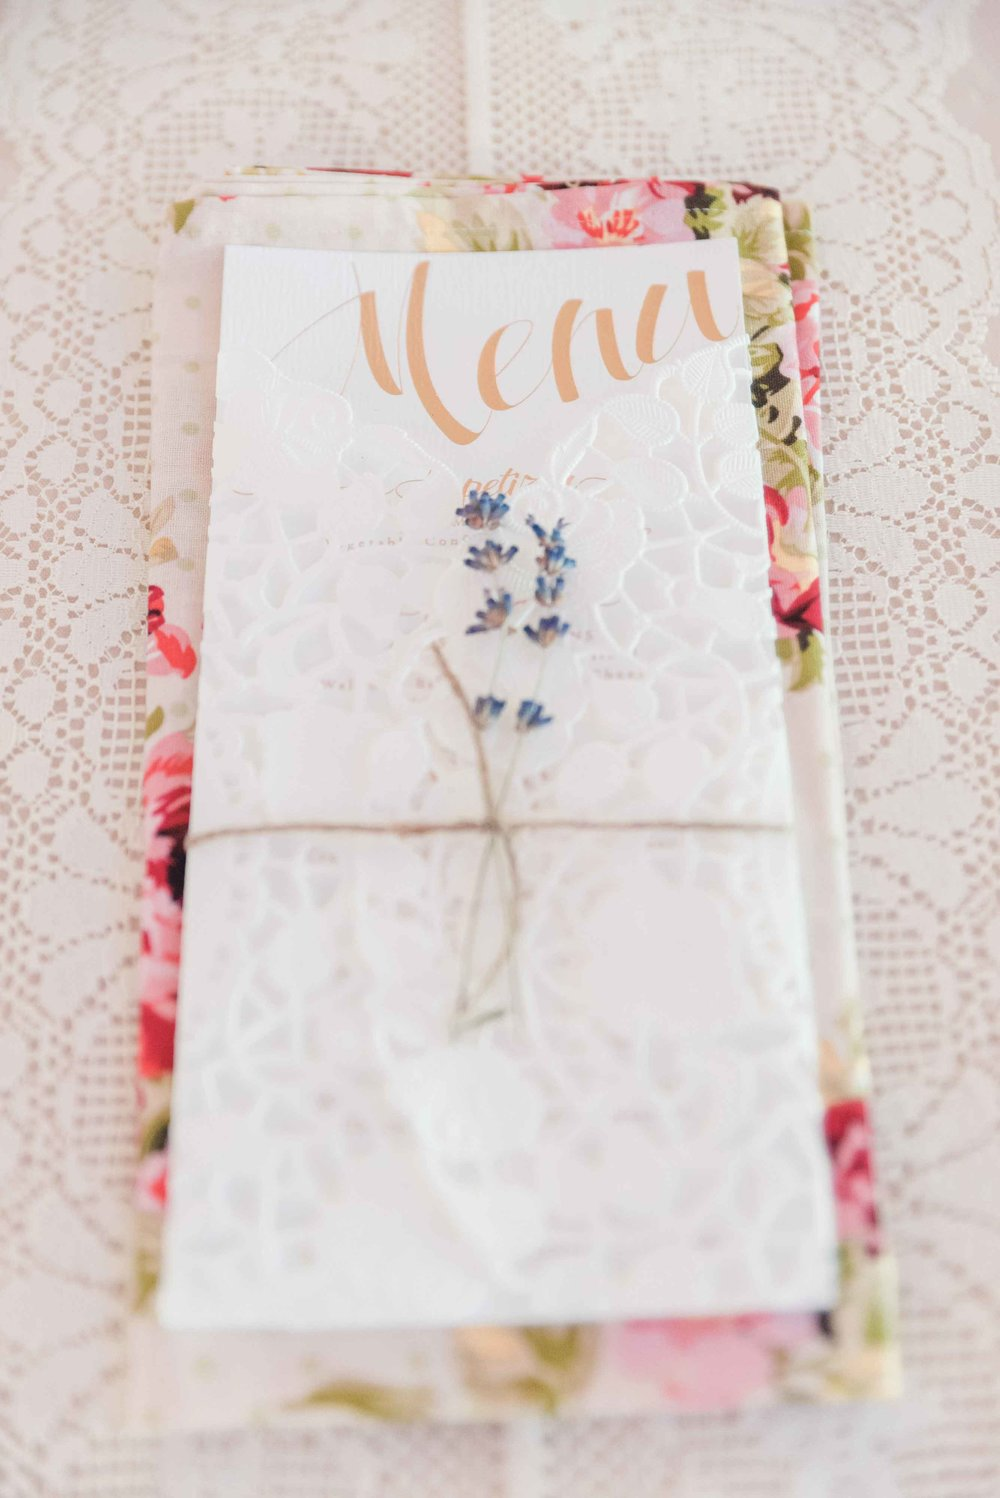 A-DIY-Vintage-and-Tea-Inspired-Wedding-Menu.jpg